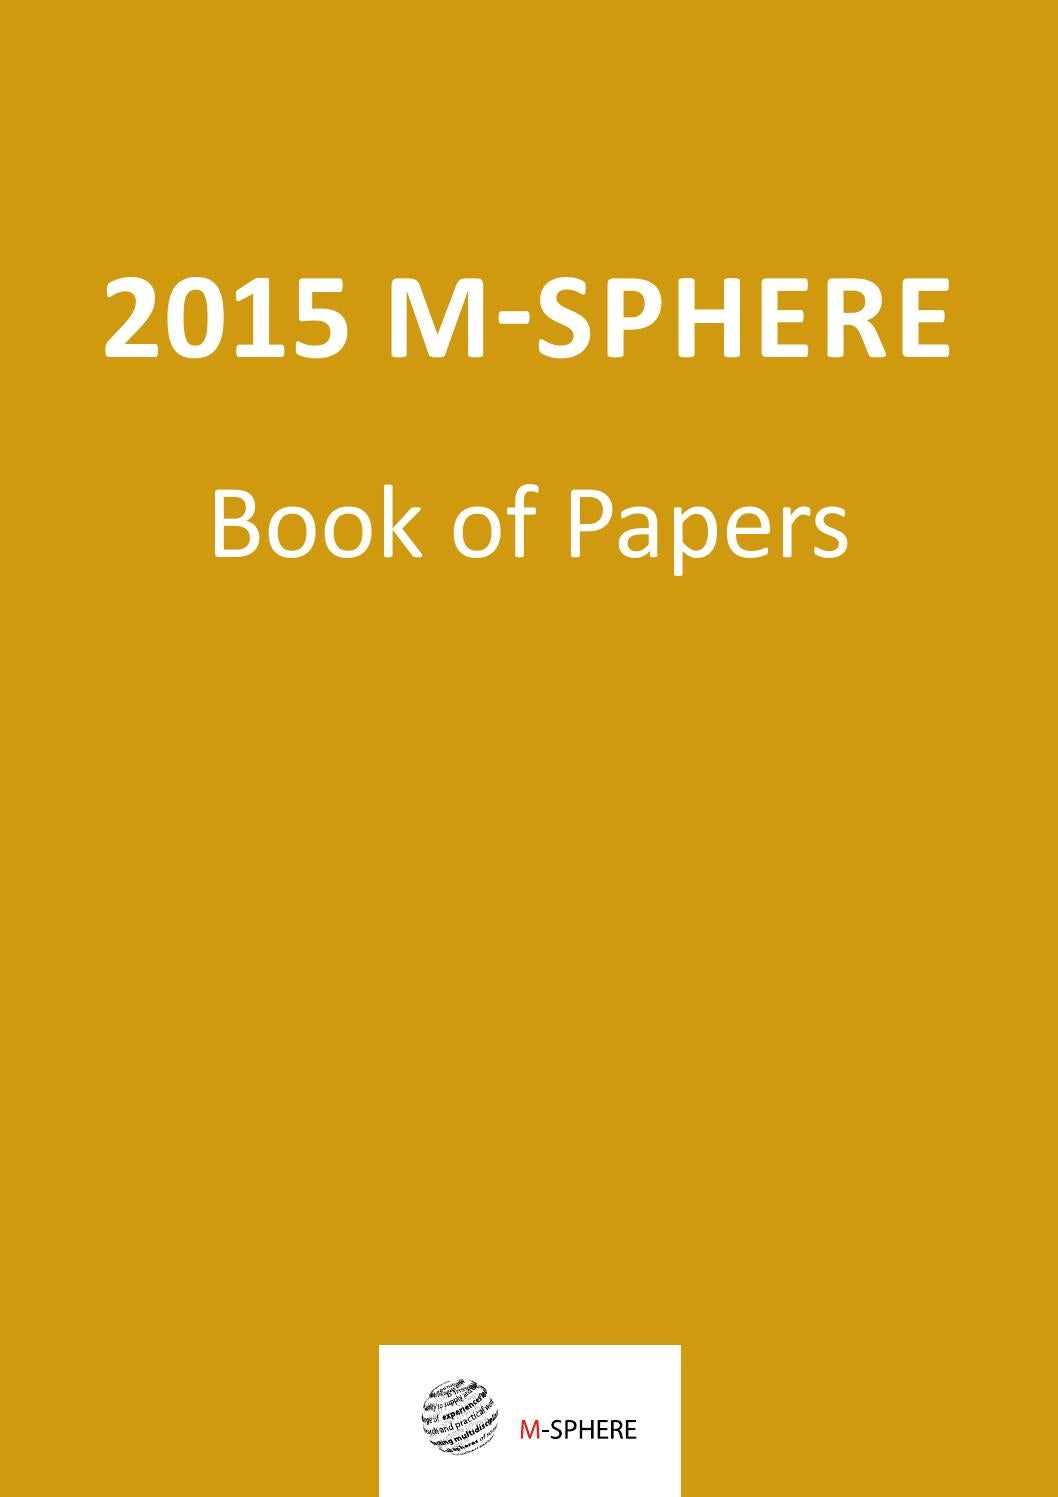 2015 M-SPHERE BOOK OF PAPERS by Tihomir Vranesevic - issuu